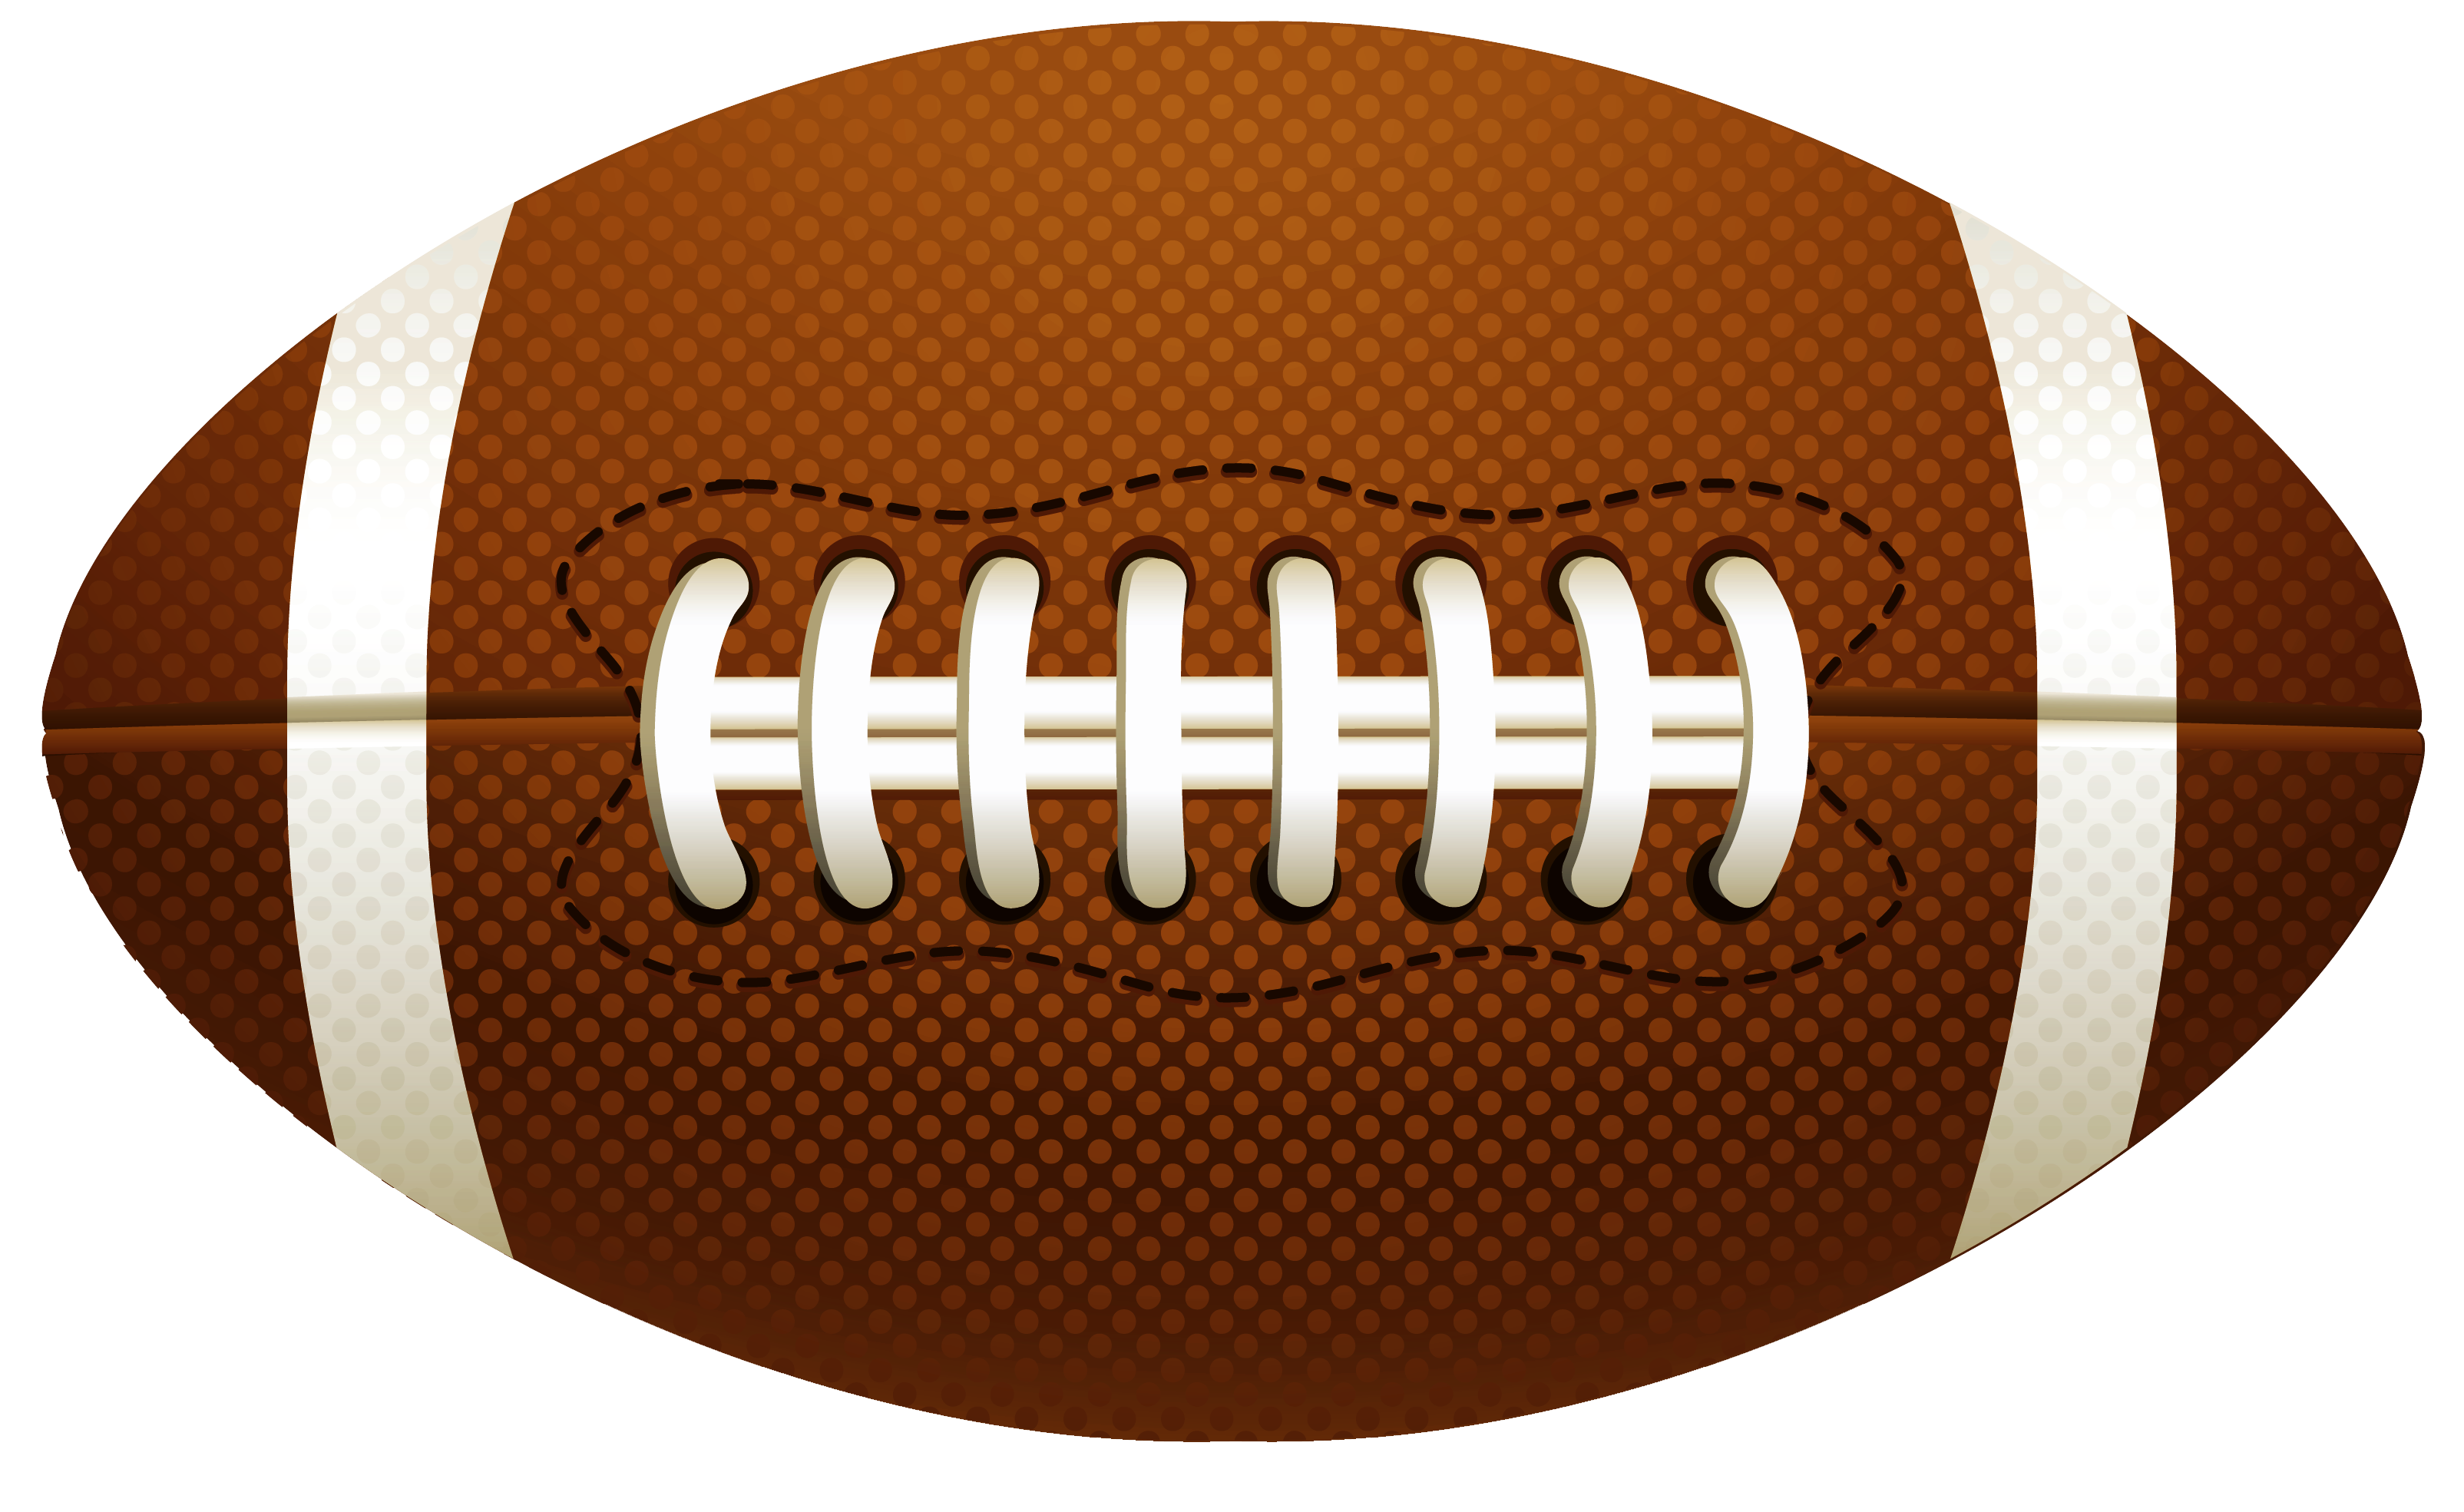 Football animated clipart graphic download American Football Ball PNG Vector Clipart | Interests | Pinterest ... graphic download